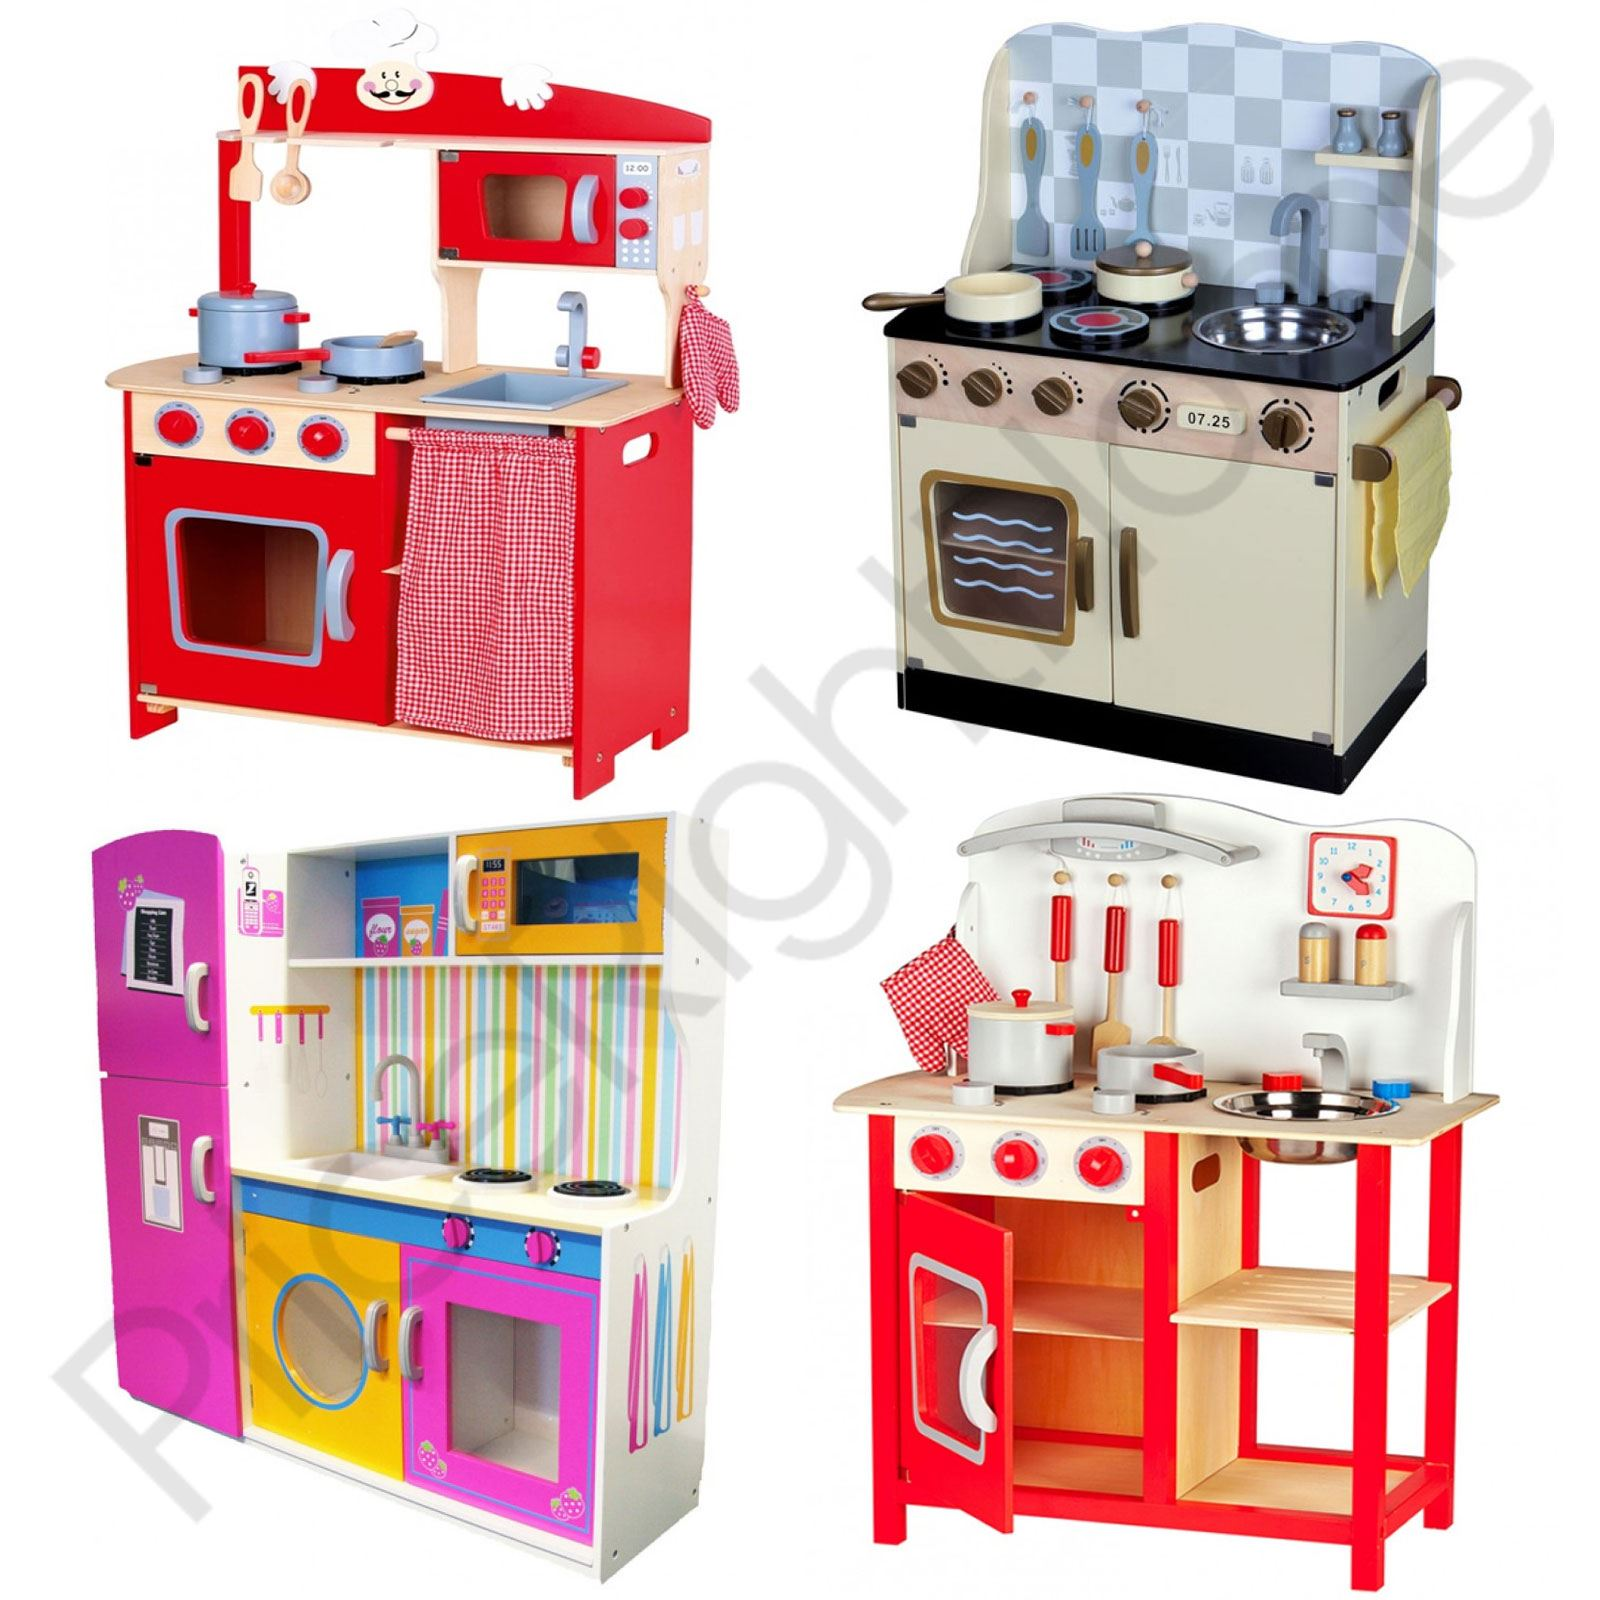 LEOMARK WOODEN KITCHEN CHILDRENS PLAY KITCHEN WITH ACCESSORIES TOYS ...